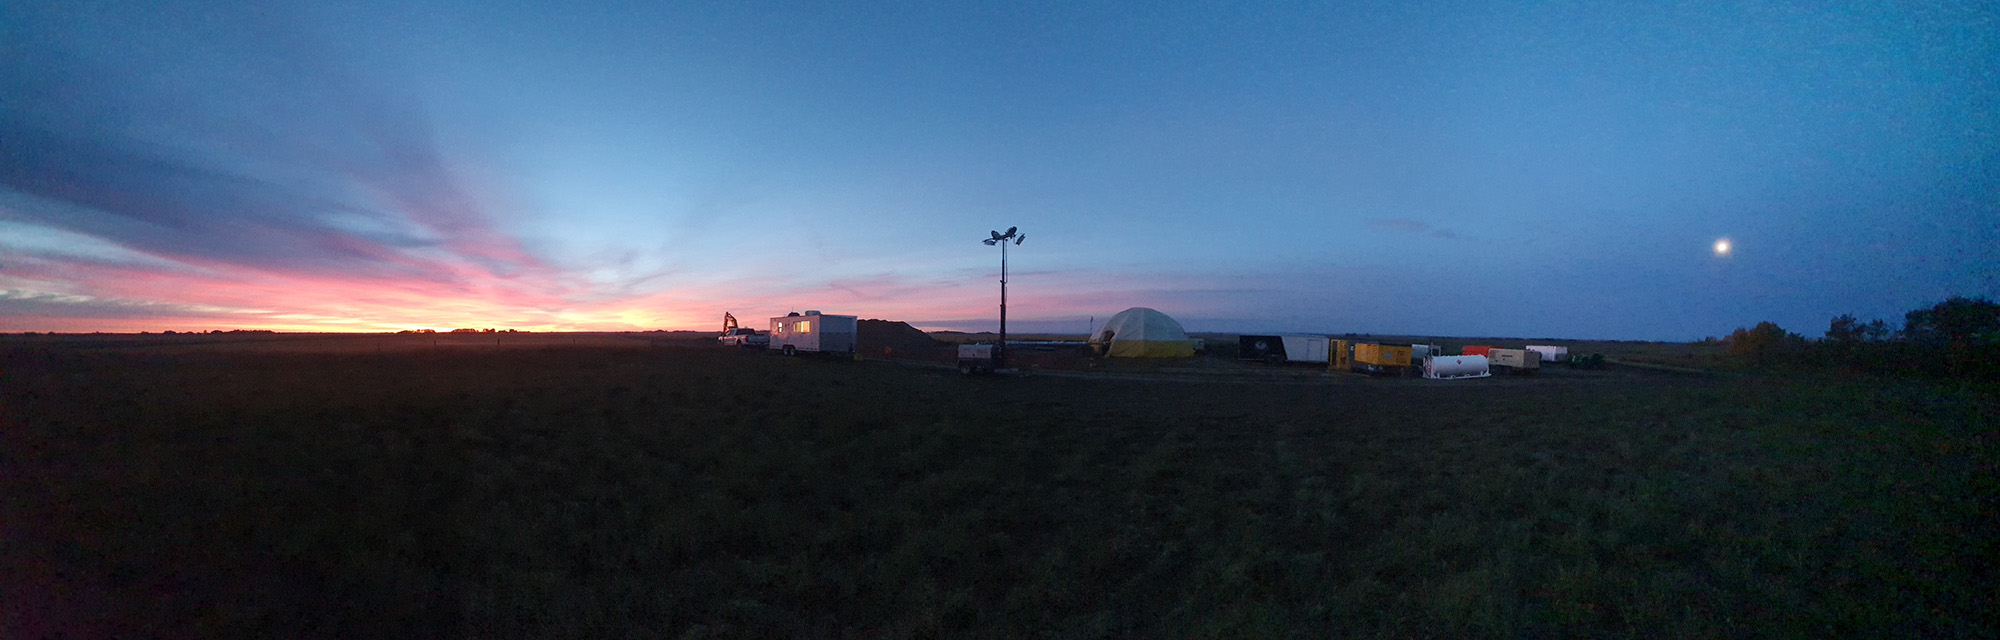 sunset at enerclear site